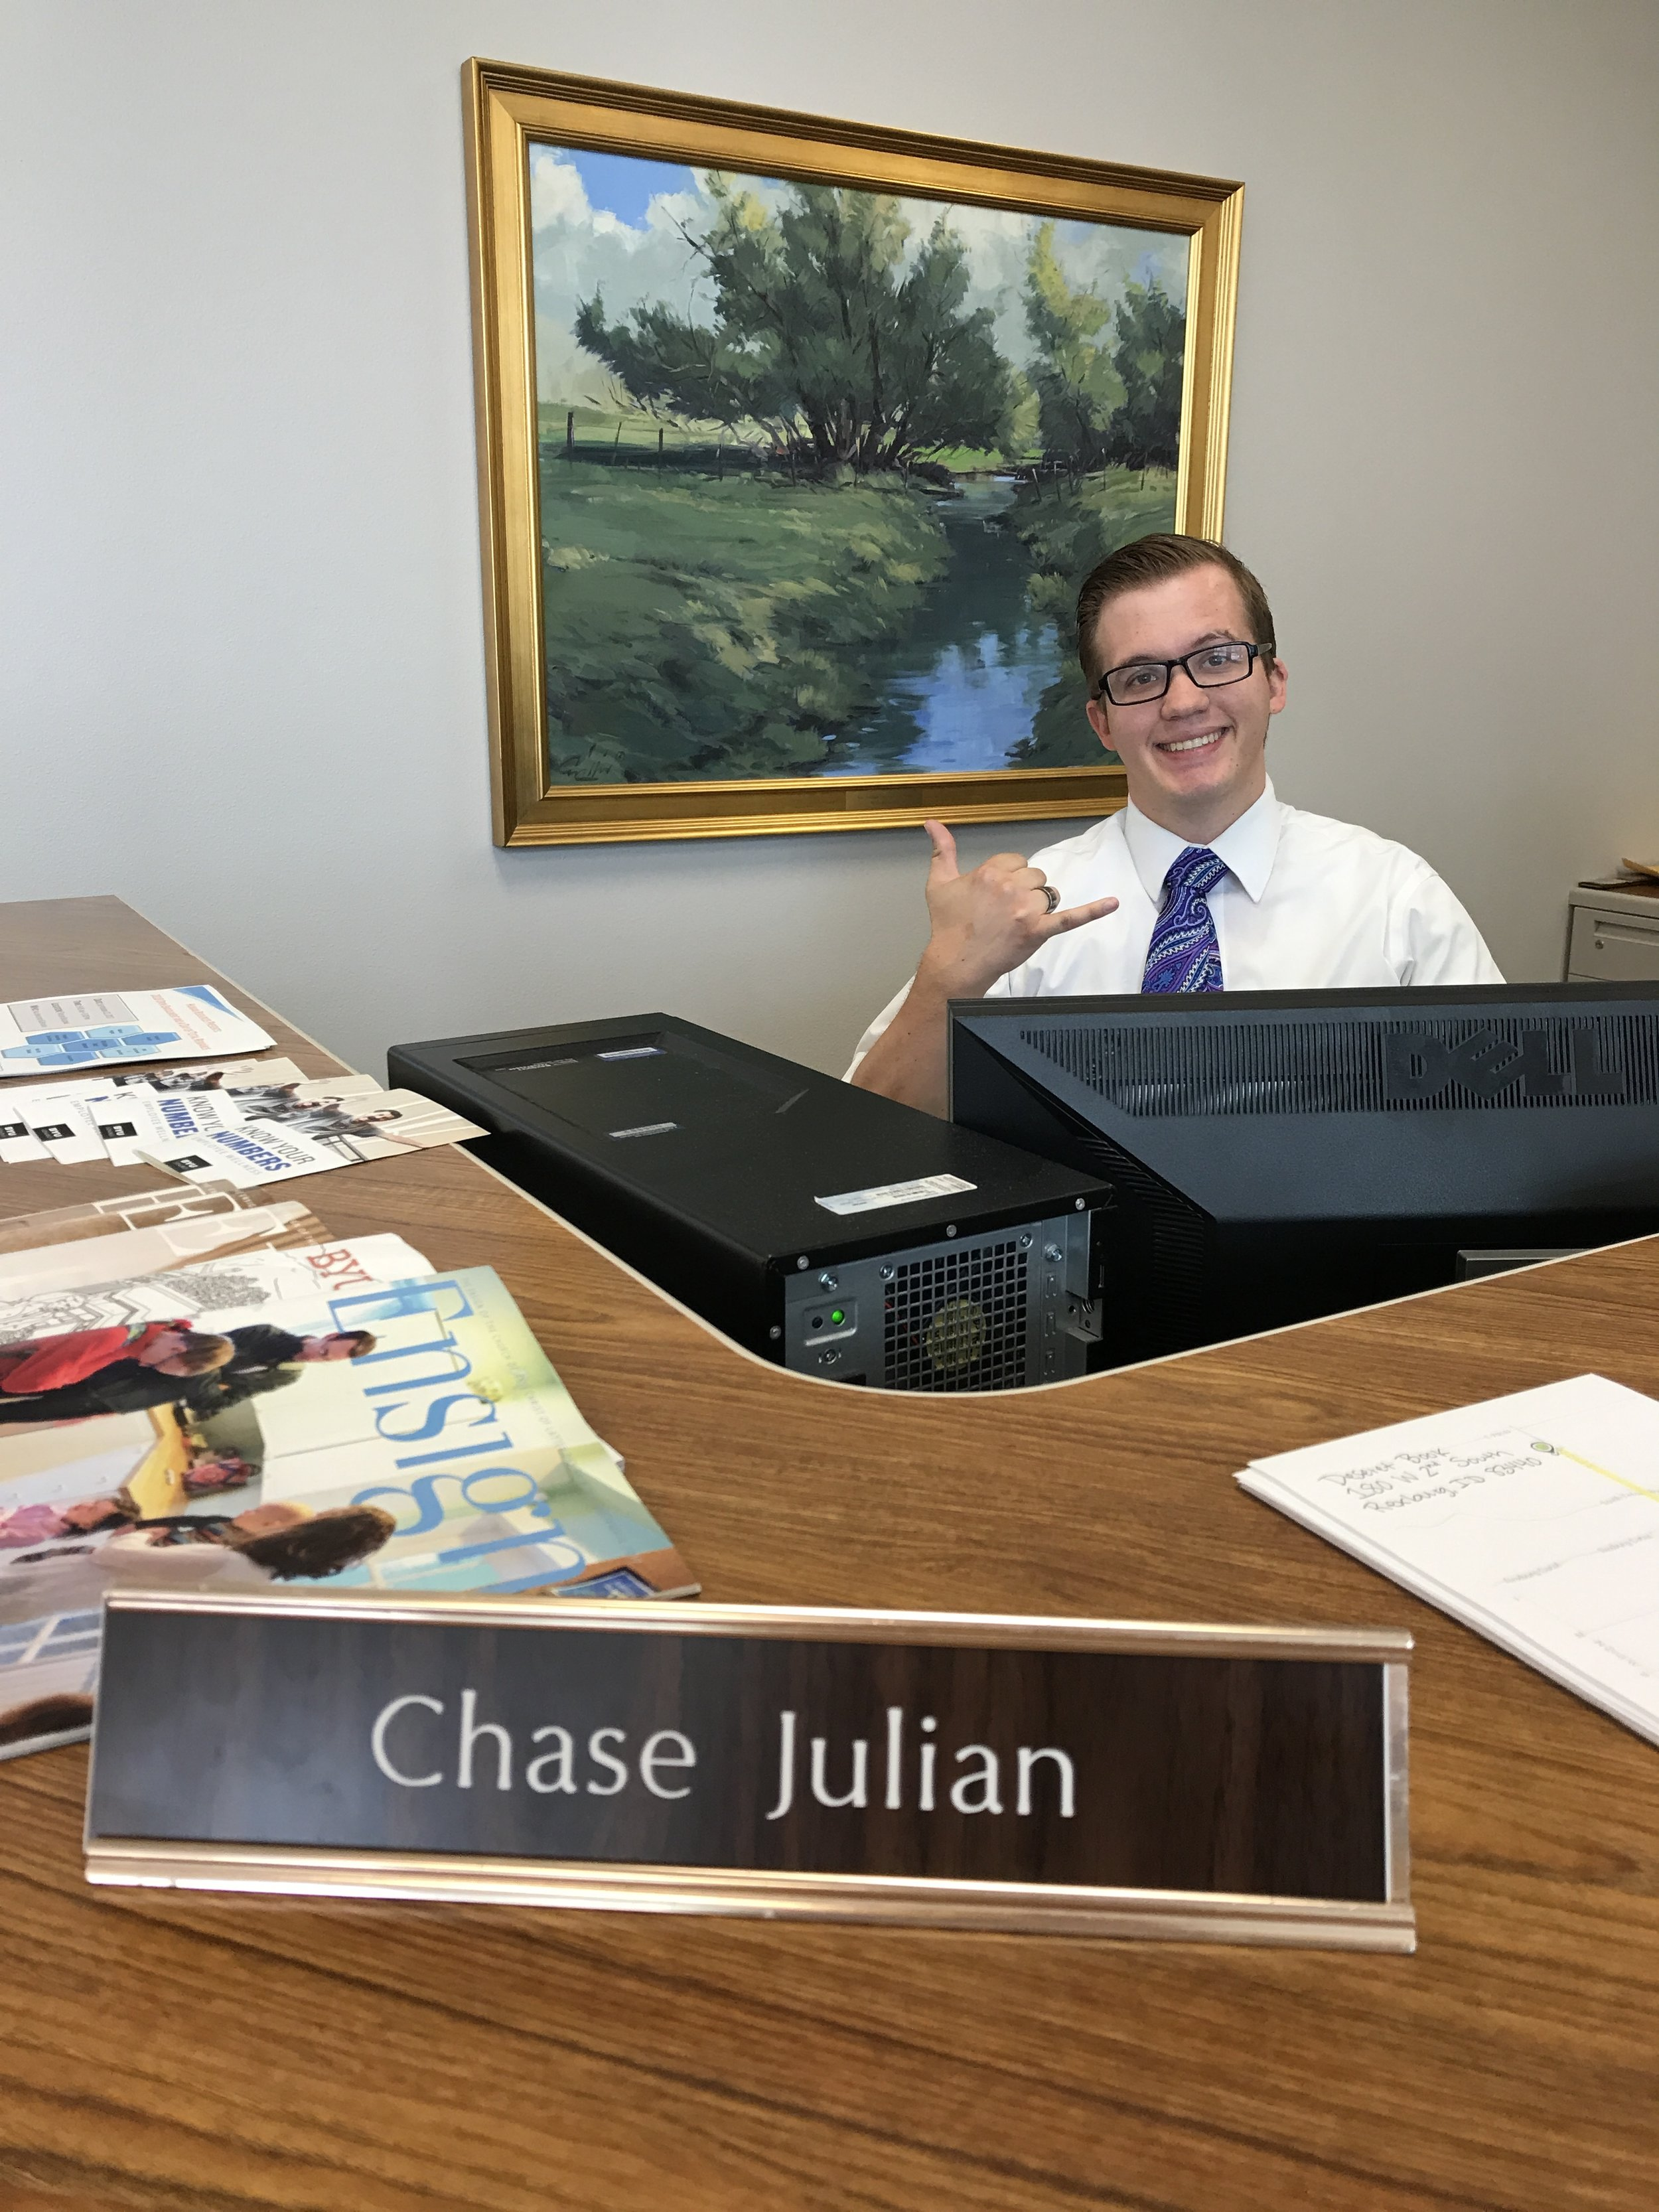 Photo taken at LDS Philanthropies in Rexburg, Idaho, where Chase works everyday from 11:00am to 2:00pm.